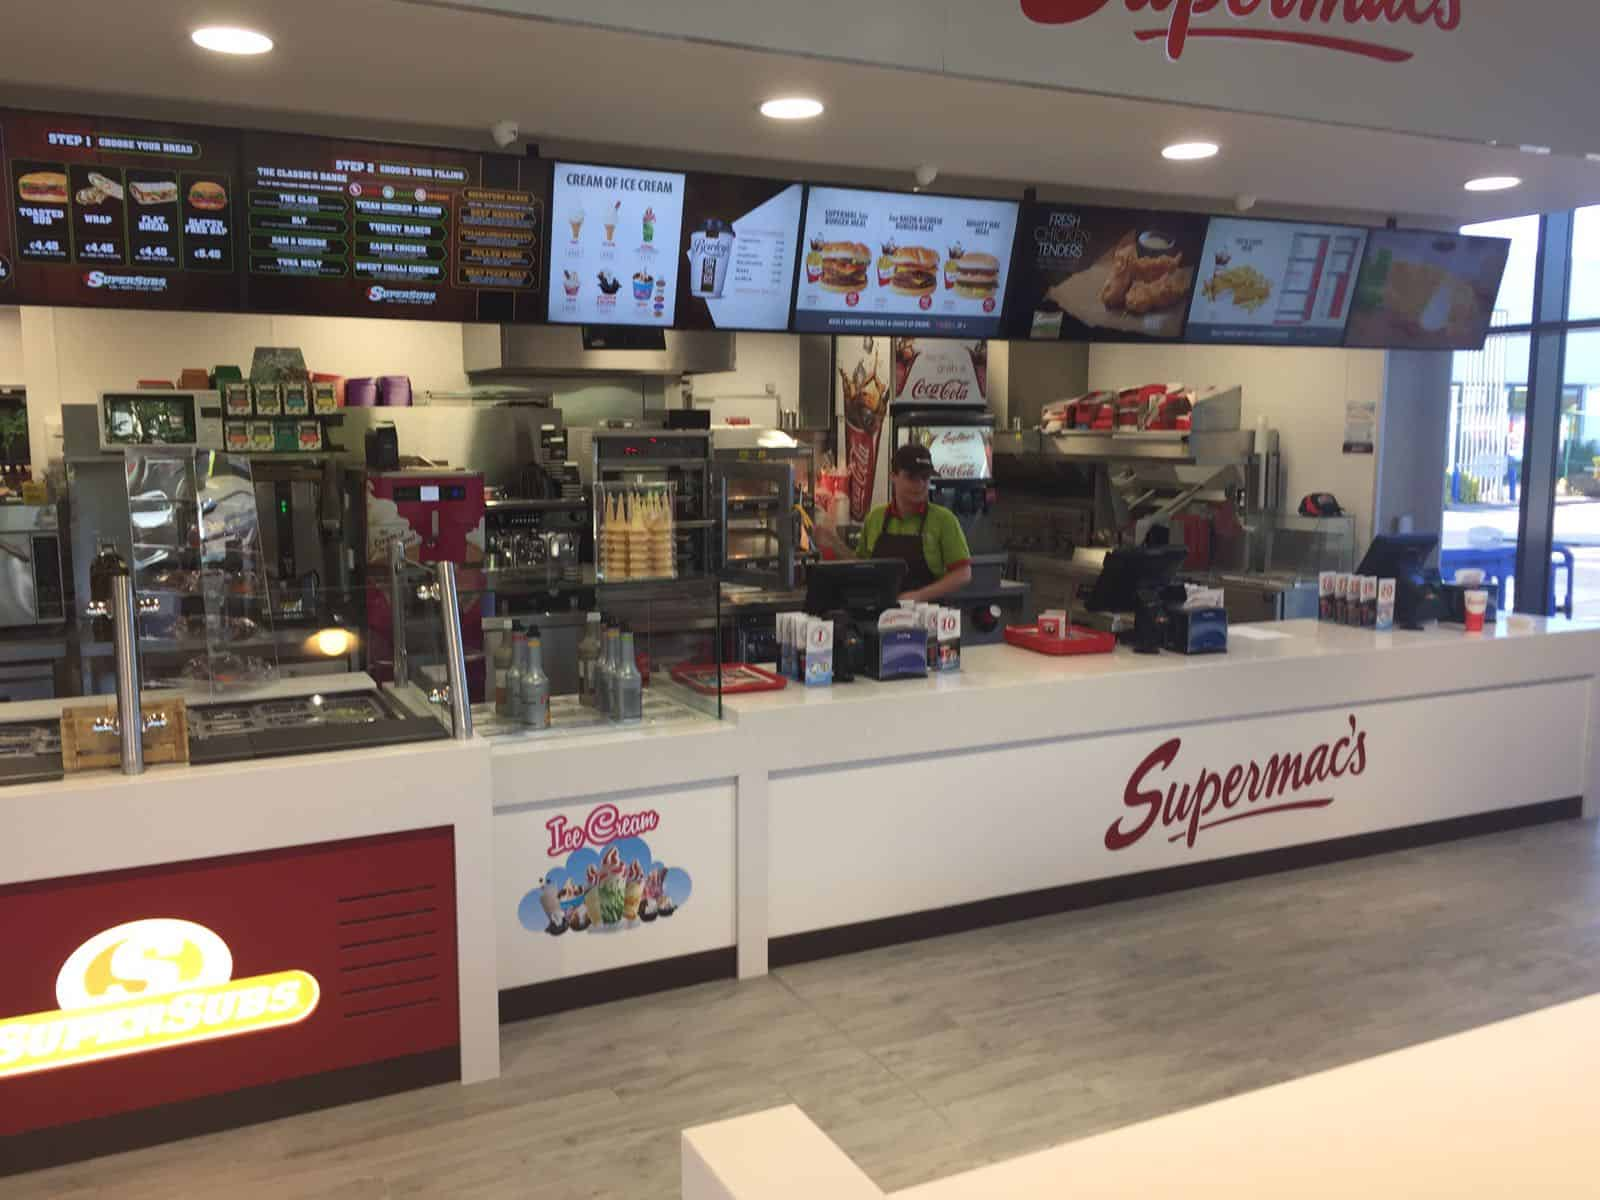 Martin Food Equipment f0bfc6cd-5cb1-498a-8786-bd7a24225945 Recent Installation at Supermacs Clarehall Dublin News